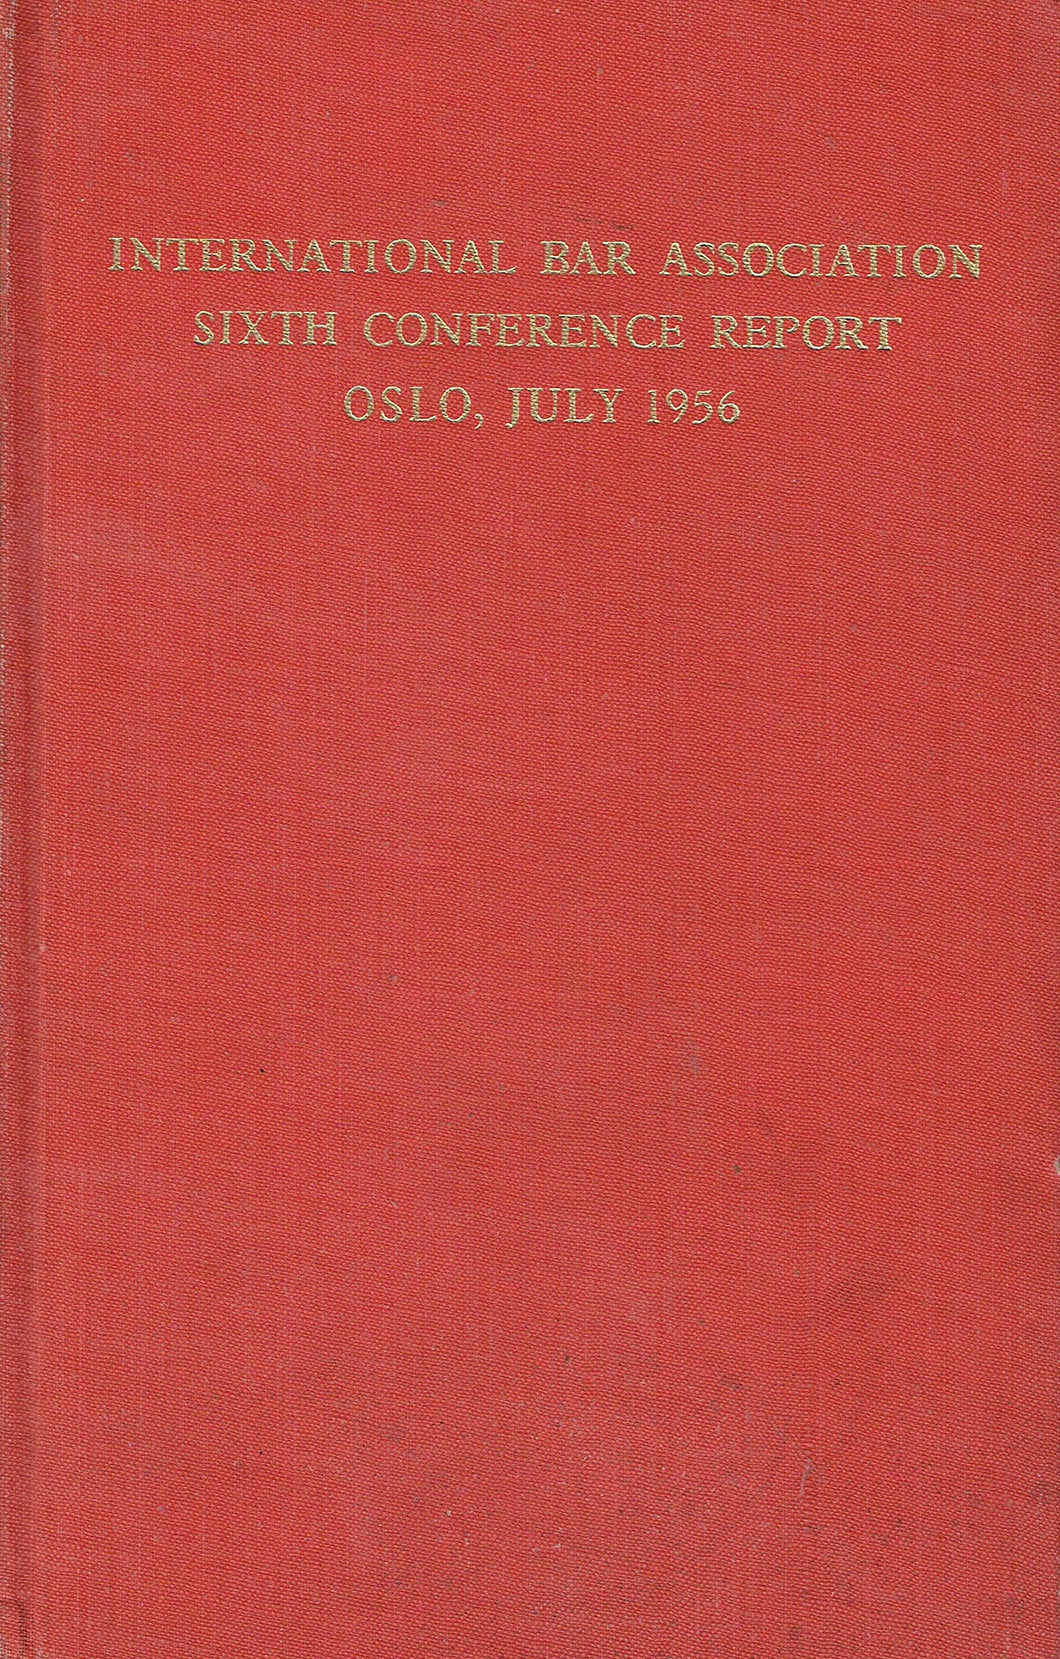 International Bar Association Sixth Conference Report - Oslo, July 1956